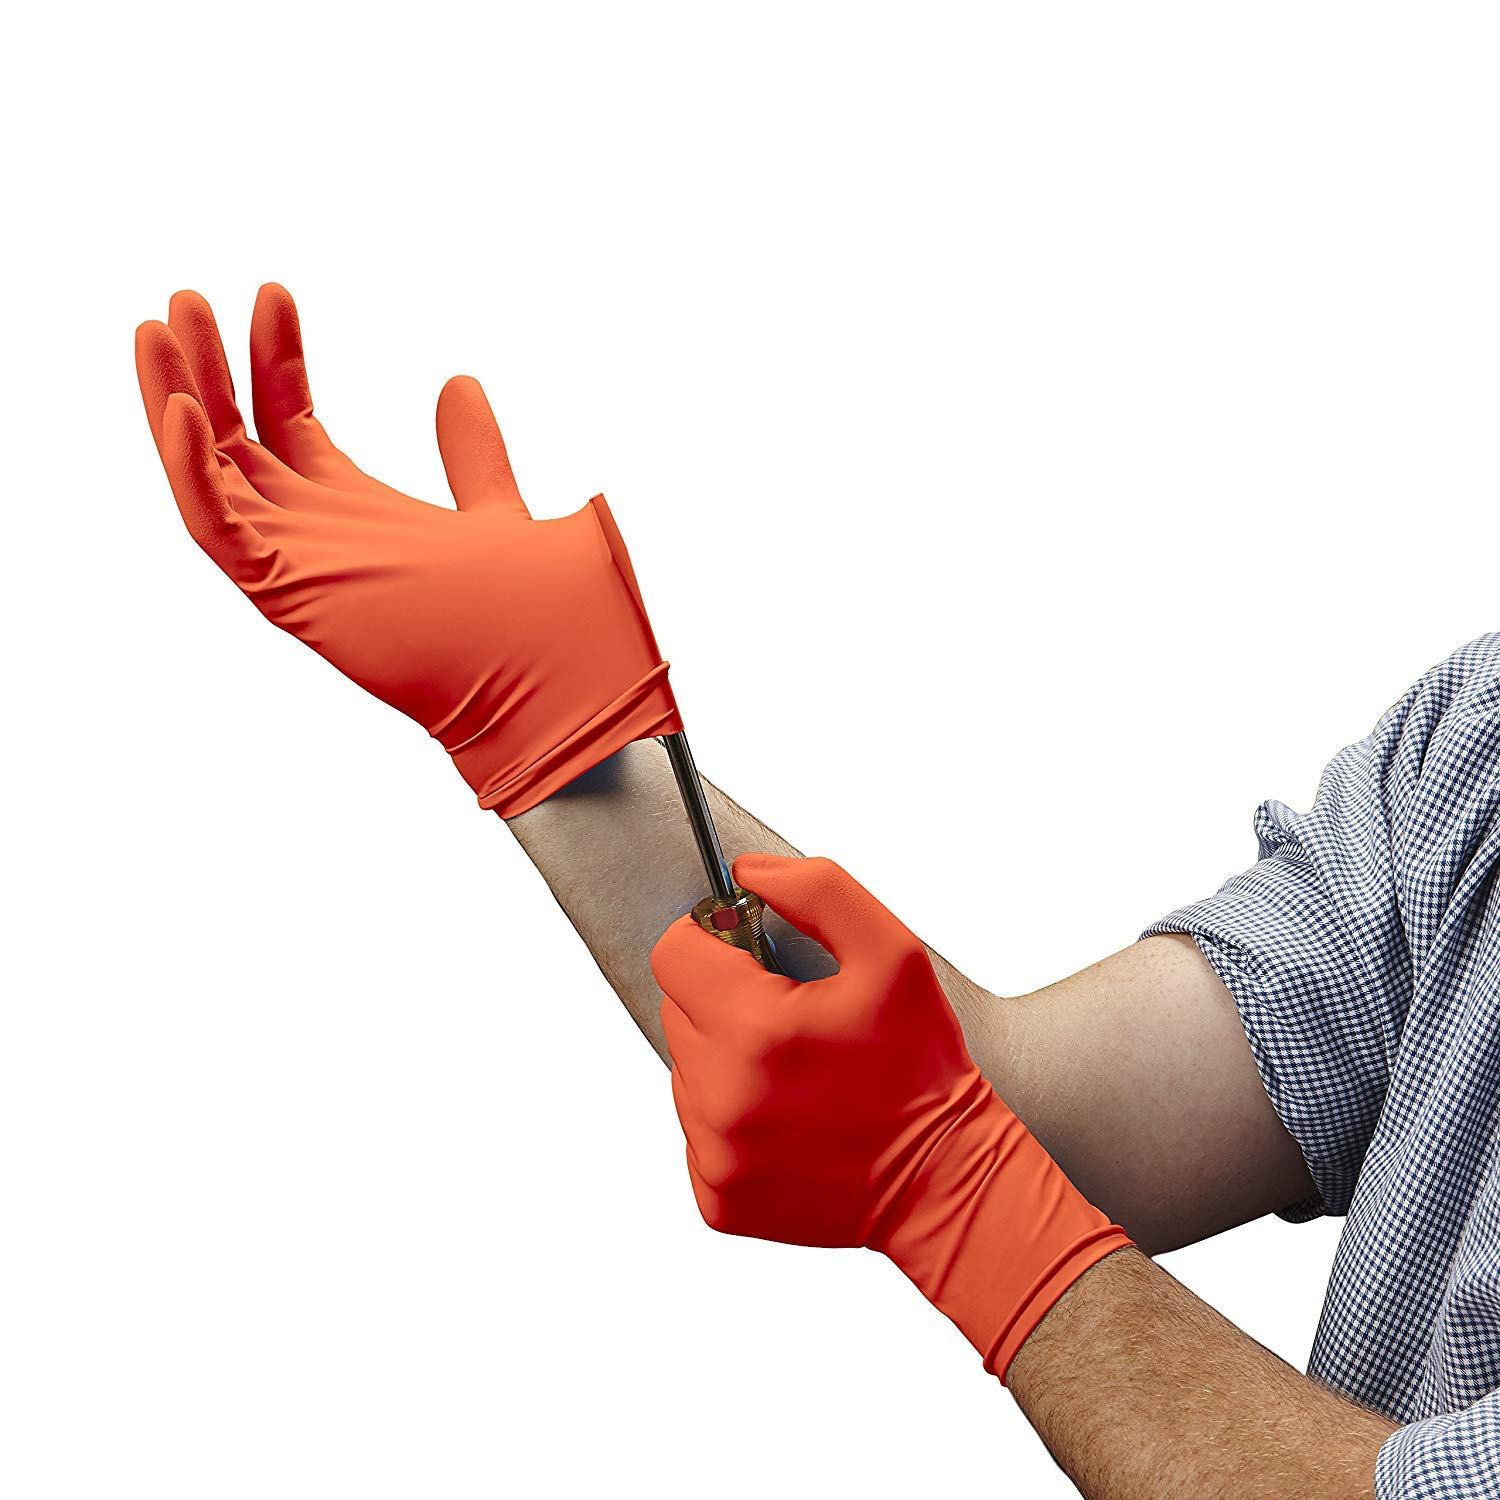 Venom Steel Sportsman Nitrile Gloves with 12 inch Cuff, 6 mil Rip Resistant Field Dressing Gloves, One Size Fits Most (12 Count), Great for use as Game Cleaning Gloves, Fishing, Hunting (Fоur Расk) by Venom Steel (Image #3)